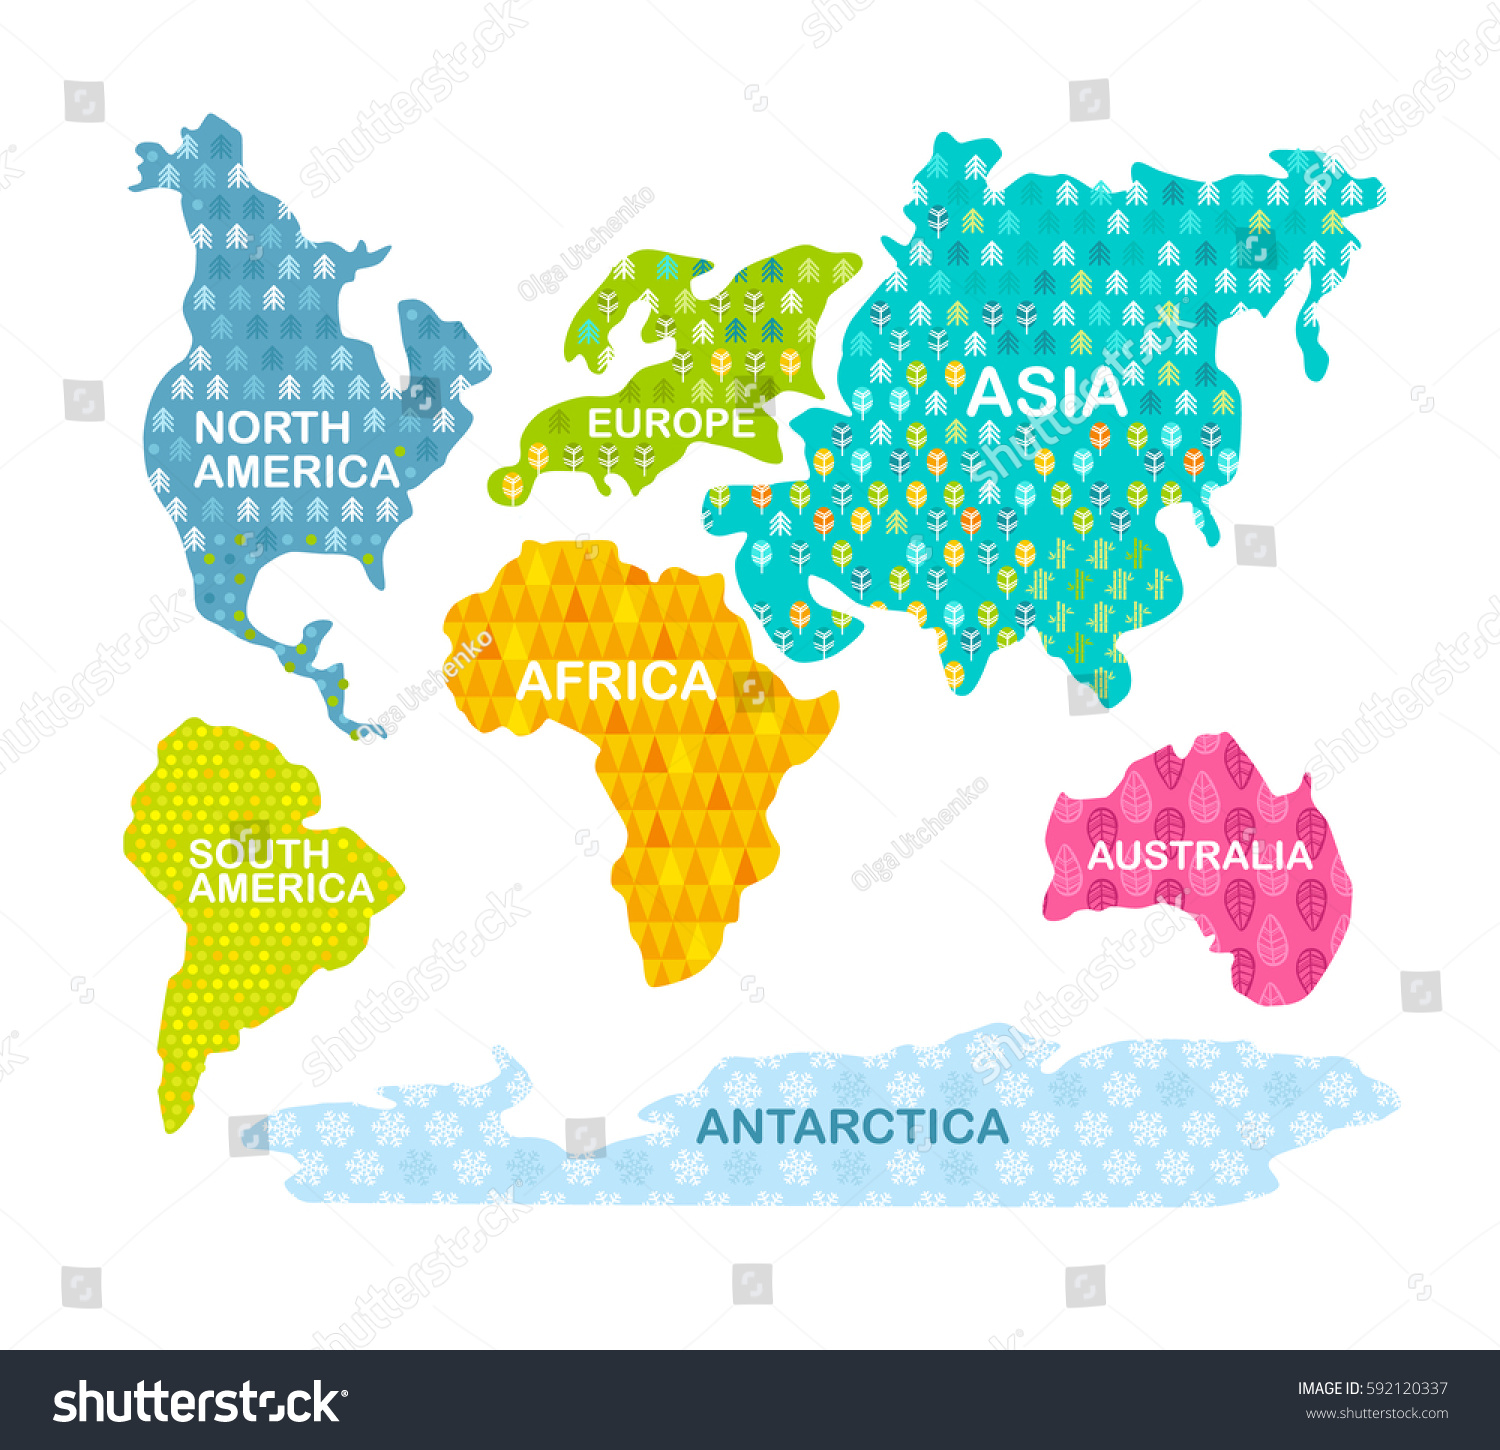 Colorful world map continents patterns africa vectores en stock colorful world map continents with patterns africa america asia europe gumiabroncs Gallery